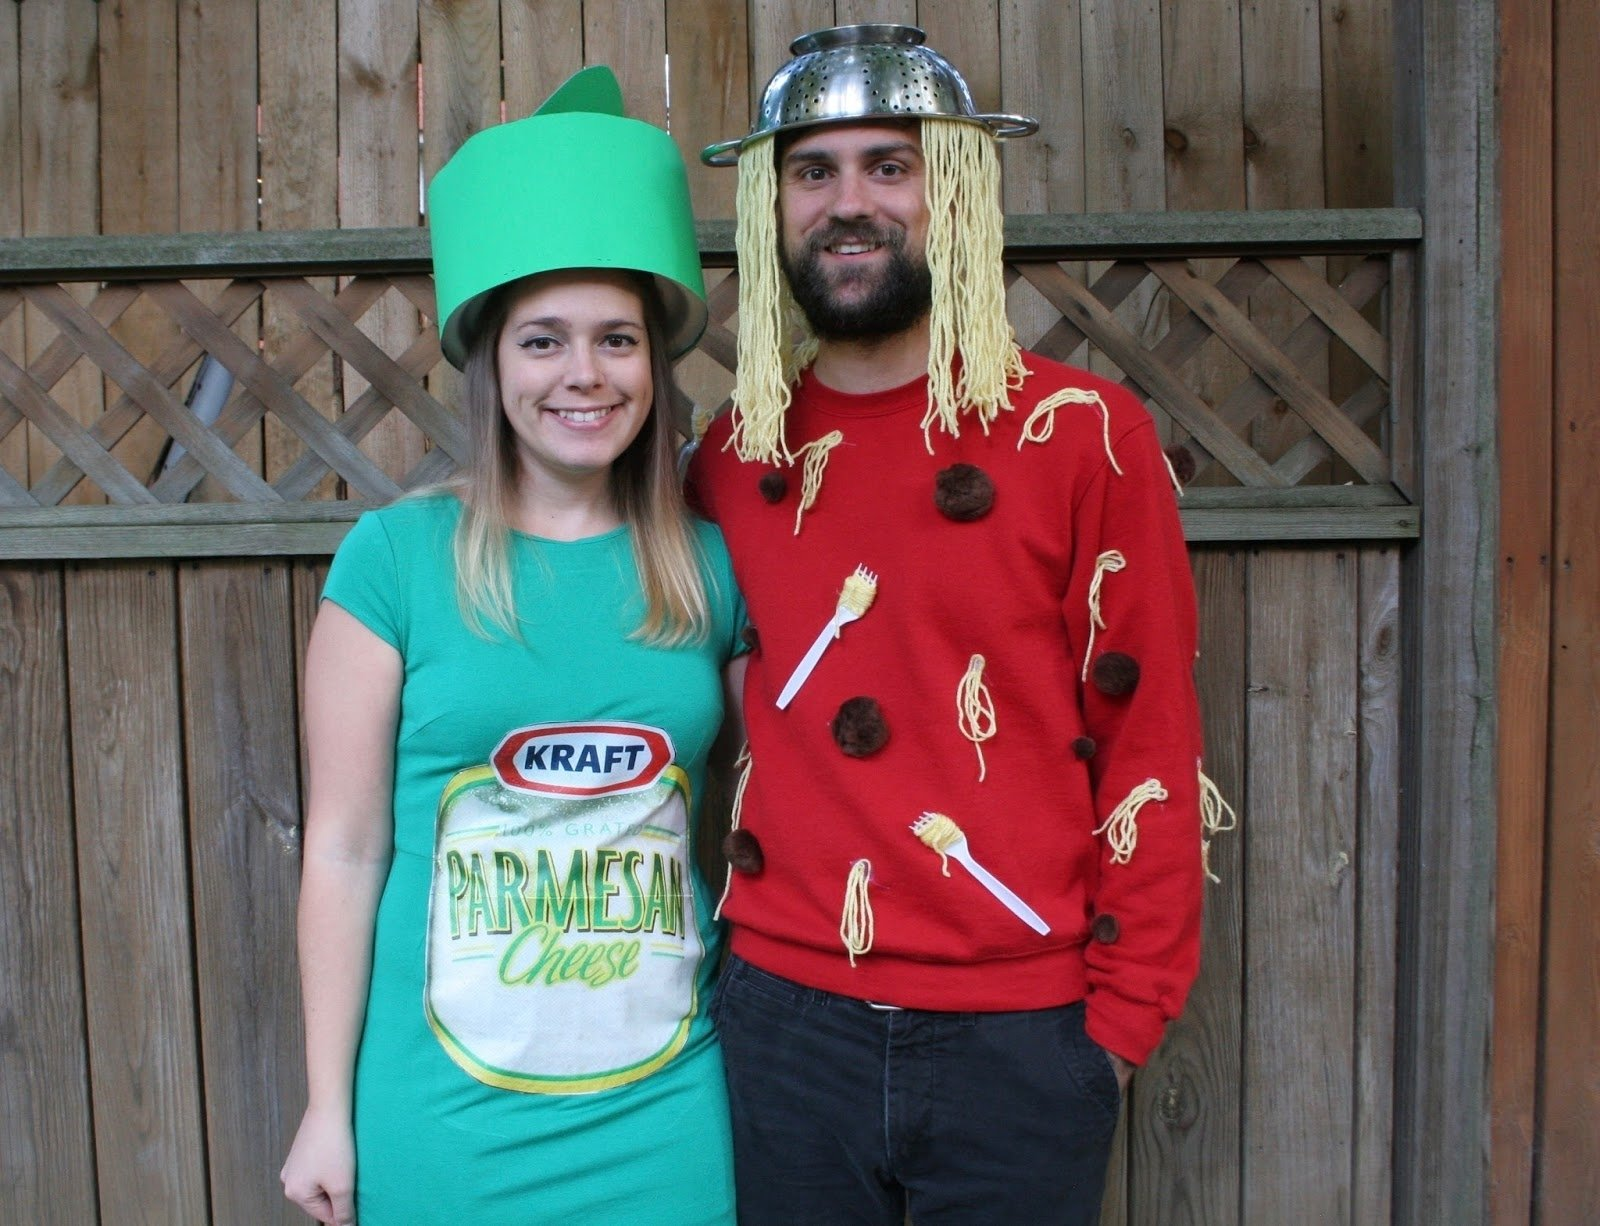 10 Spectacular Cool Couple Halloween Costume Ideas our halloween costumes spaghetti parmesan cheese the surznick 8 2021